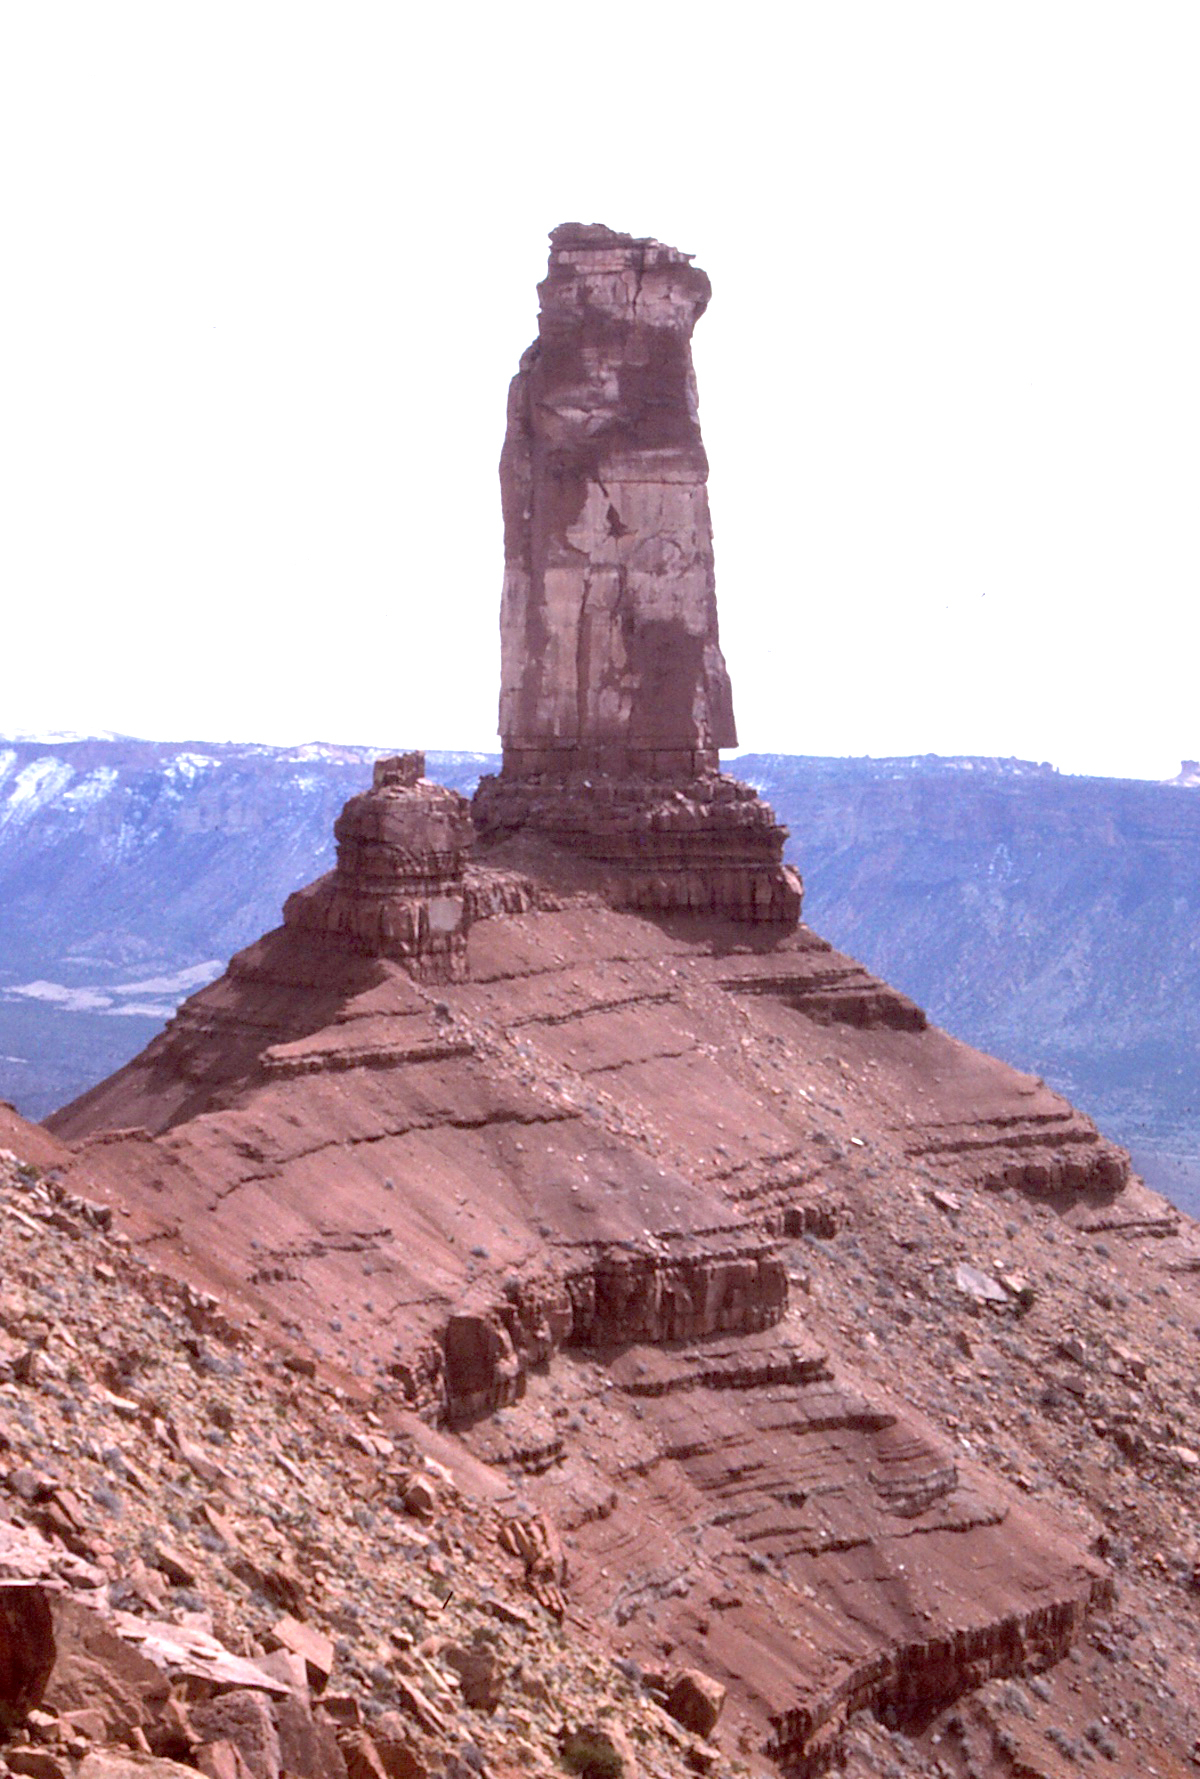 The north face of Castleton Tower, Utah. The Kor-Ingalls Route described in the story ascends the opposite side of the tower. [Photo] Cameron M. Burns